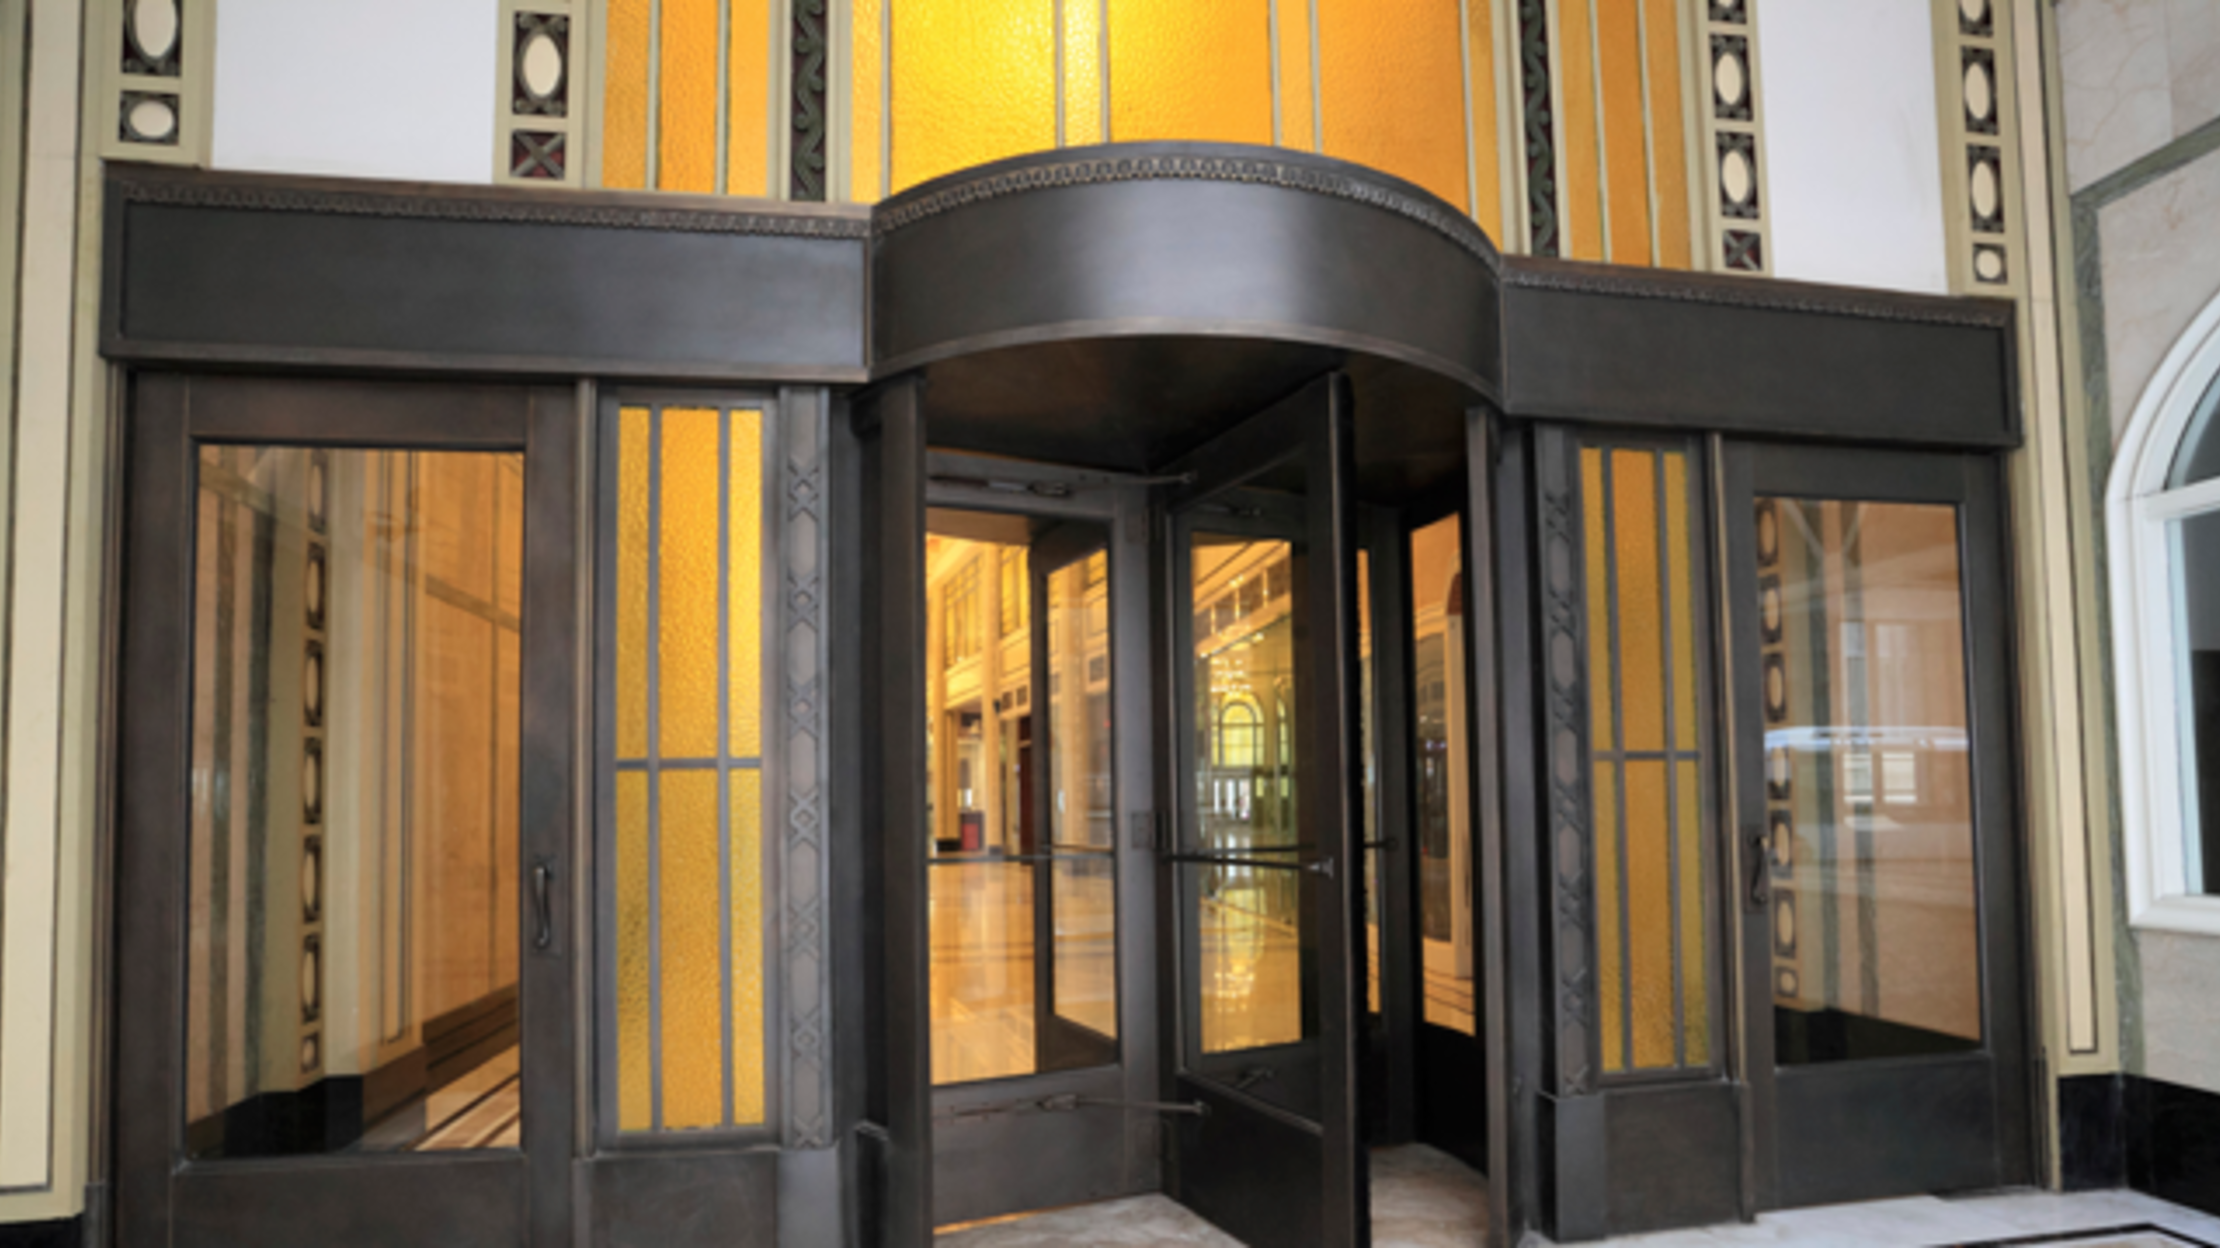 crane revolving doors New York